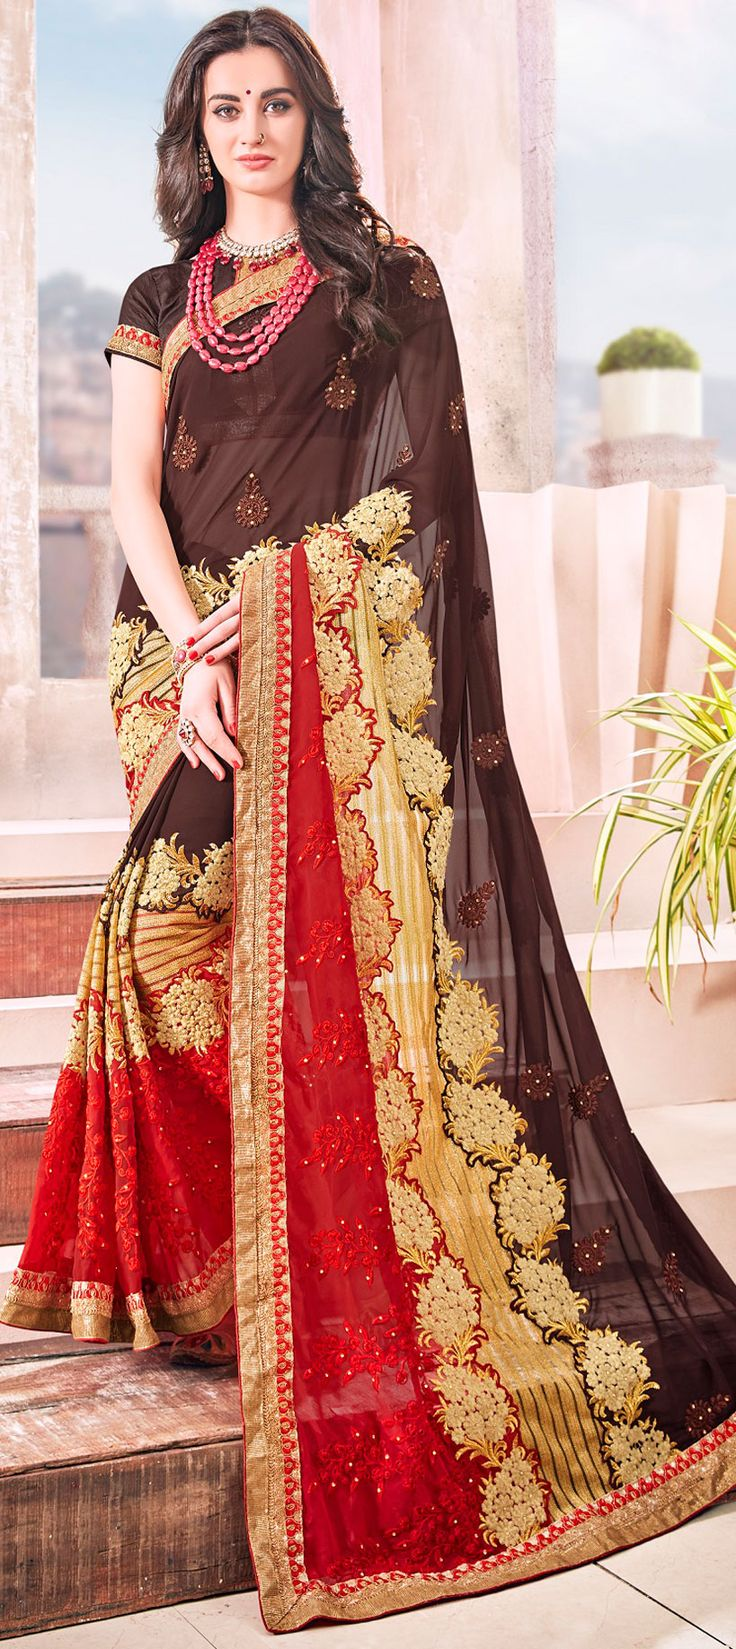 18 best Saree collection images on Pinterest | Blouse, Blouses and ...